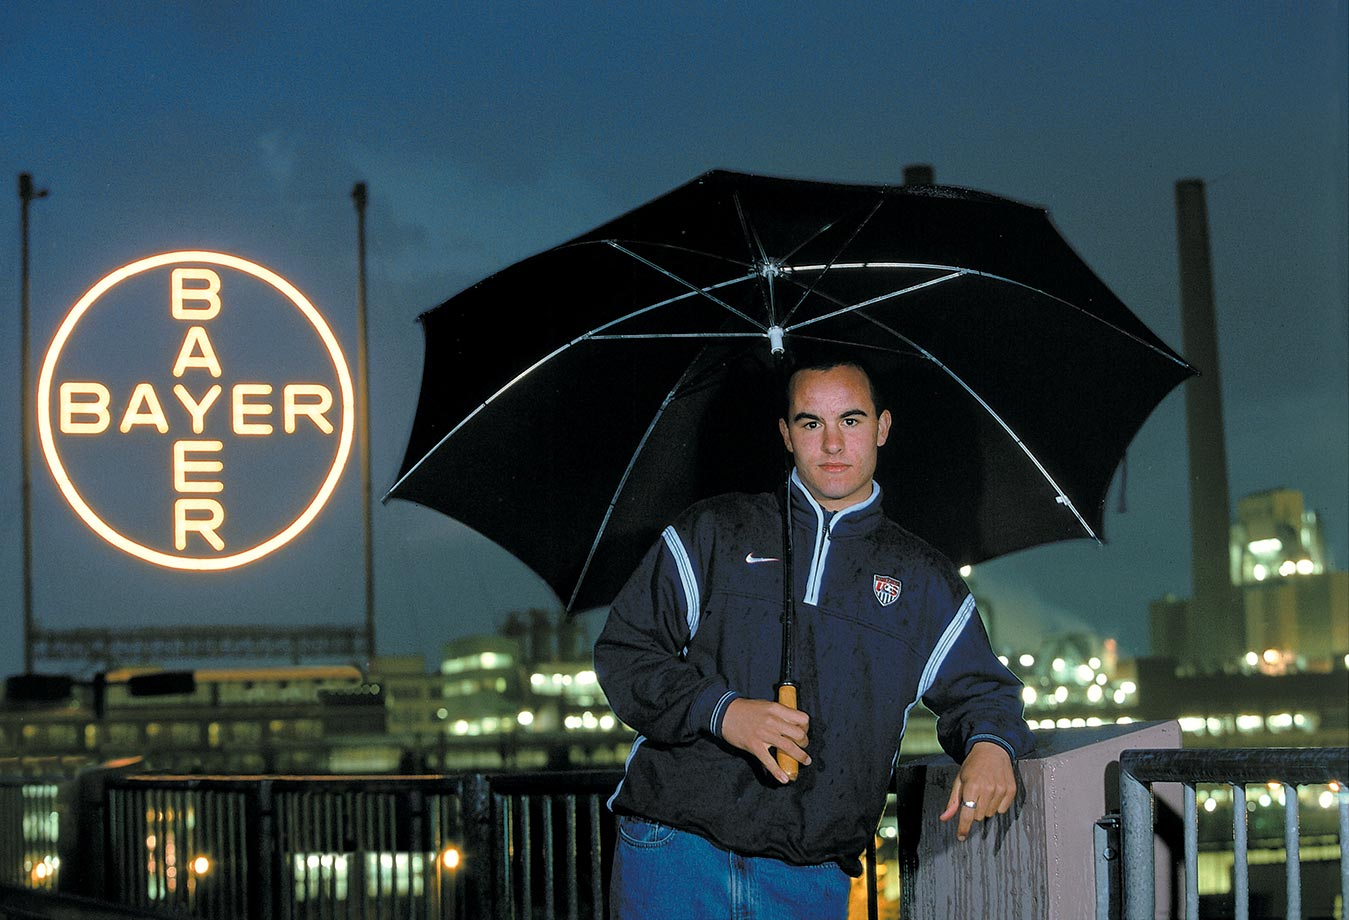 Landon Donovan poses in front of the Bayer pharmaceutical plant in Cologne, Germany. He had a brief stint with German Bundesliga side Bayer Leverkusen.